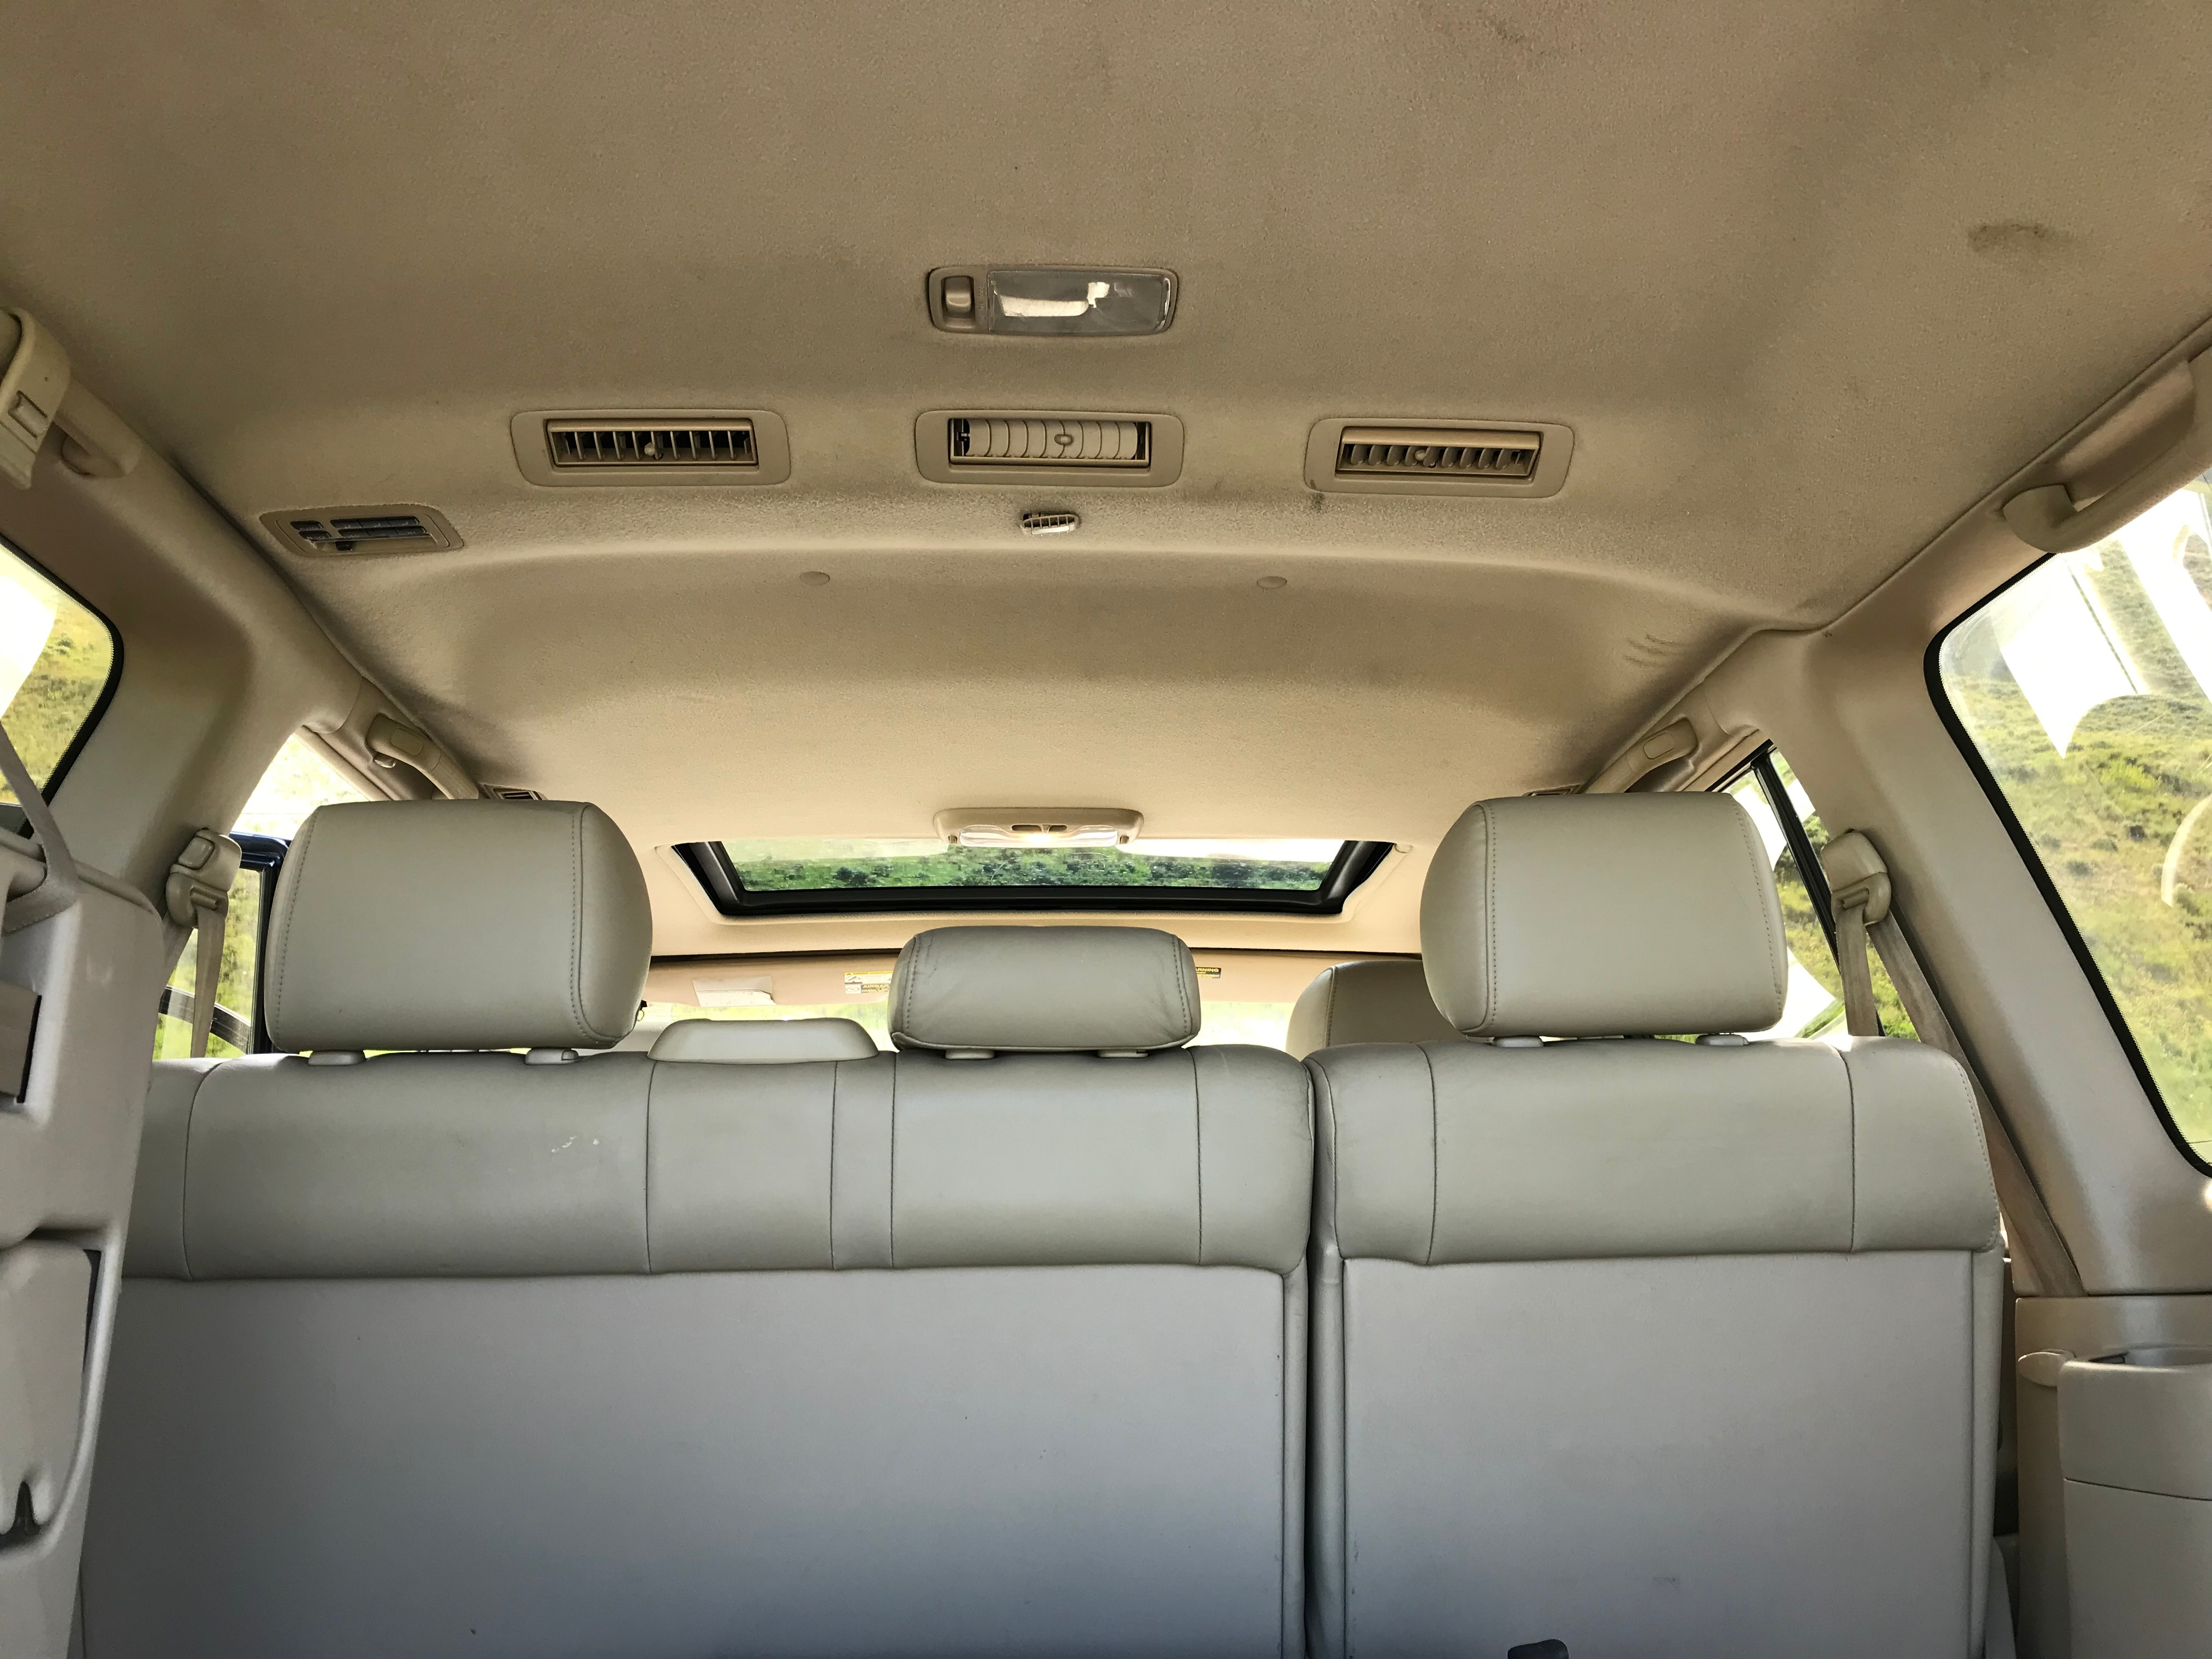 Used 2001 Toyota Land Cruiser For Sale at Rocky Mountain Yeti   VIN